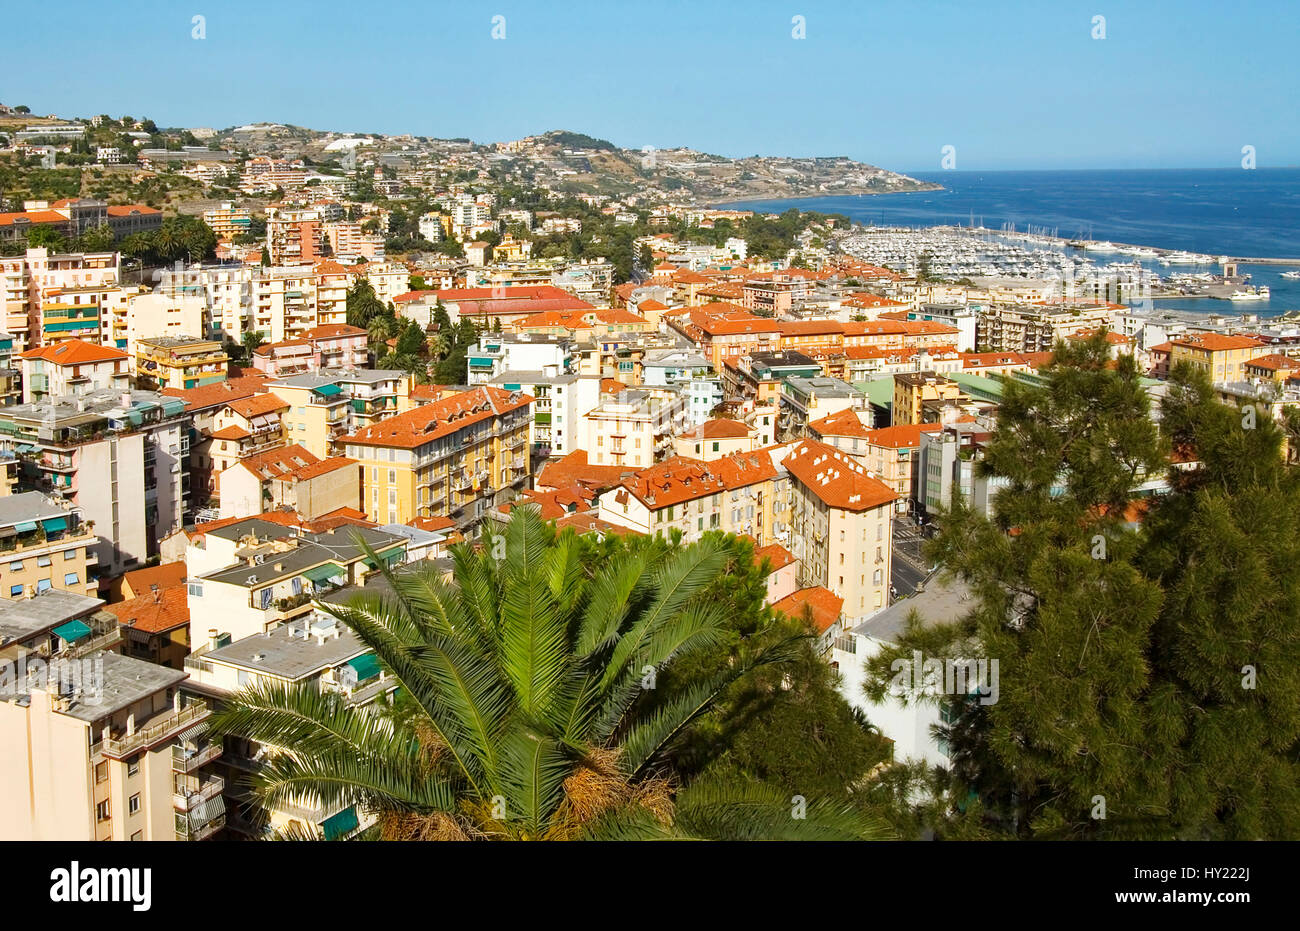 View over San Remo a popular tourist destination in the Ligurian Coast, North West Italy.  Blick ueber San Remo, - Stock Image